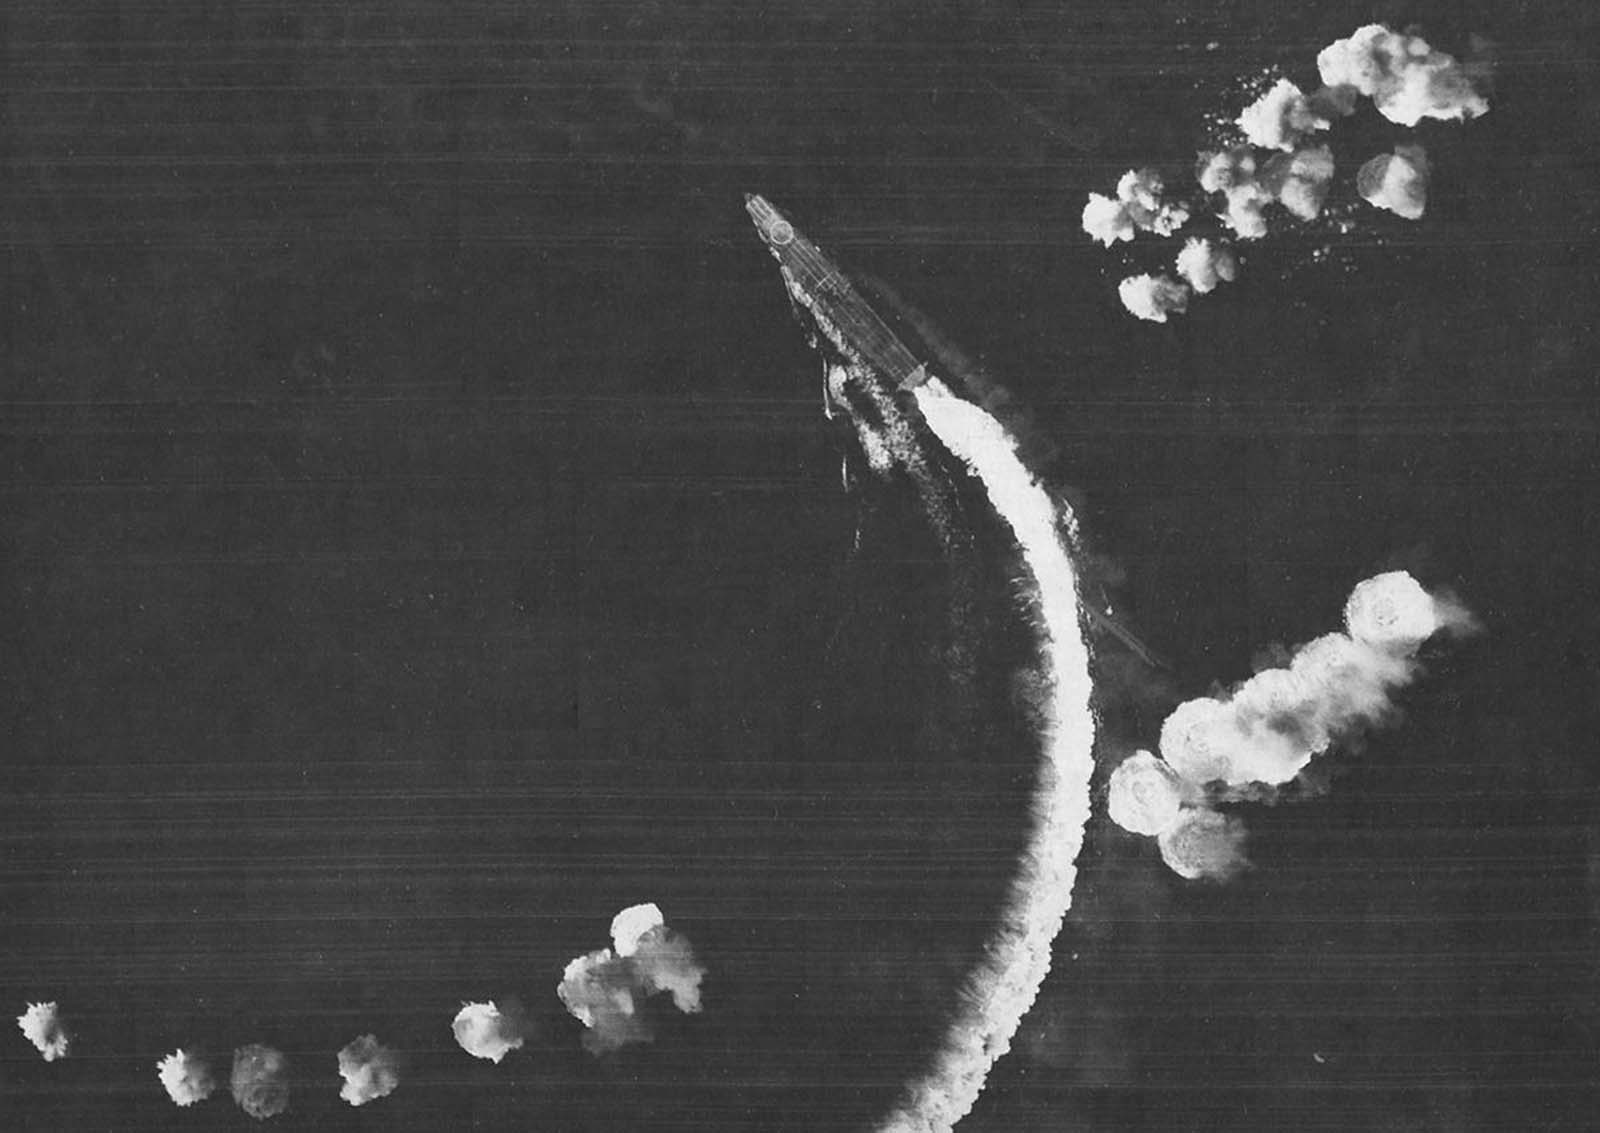 The Japanese carrier Hiryu maneuvers to avoid bombs dropped by Army Air Forces B-17 Flying Fortresses during the Battle of Midway, on June 4, 1942.